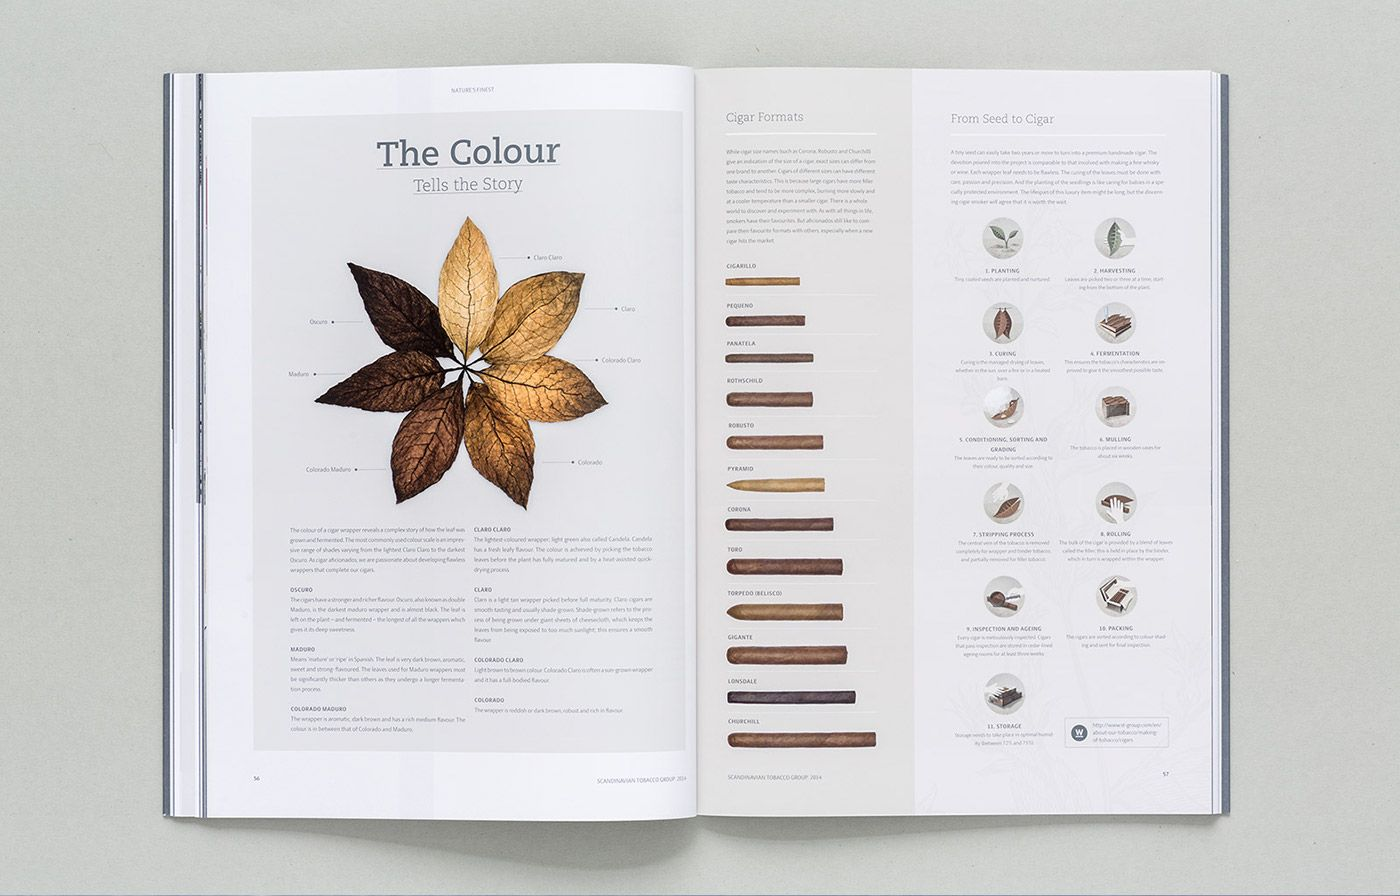 Scandinavian Tobacco Group Annual Report 2014 On Behance